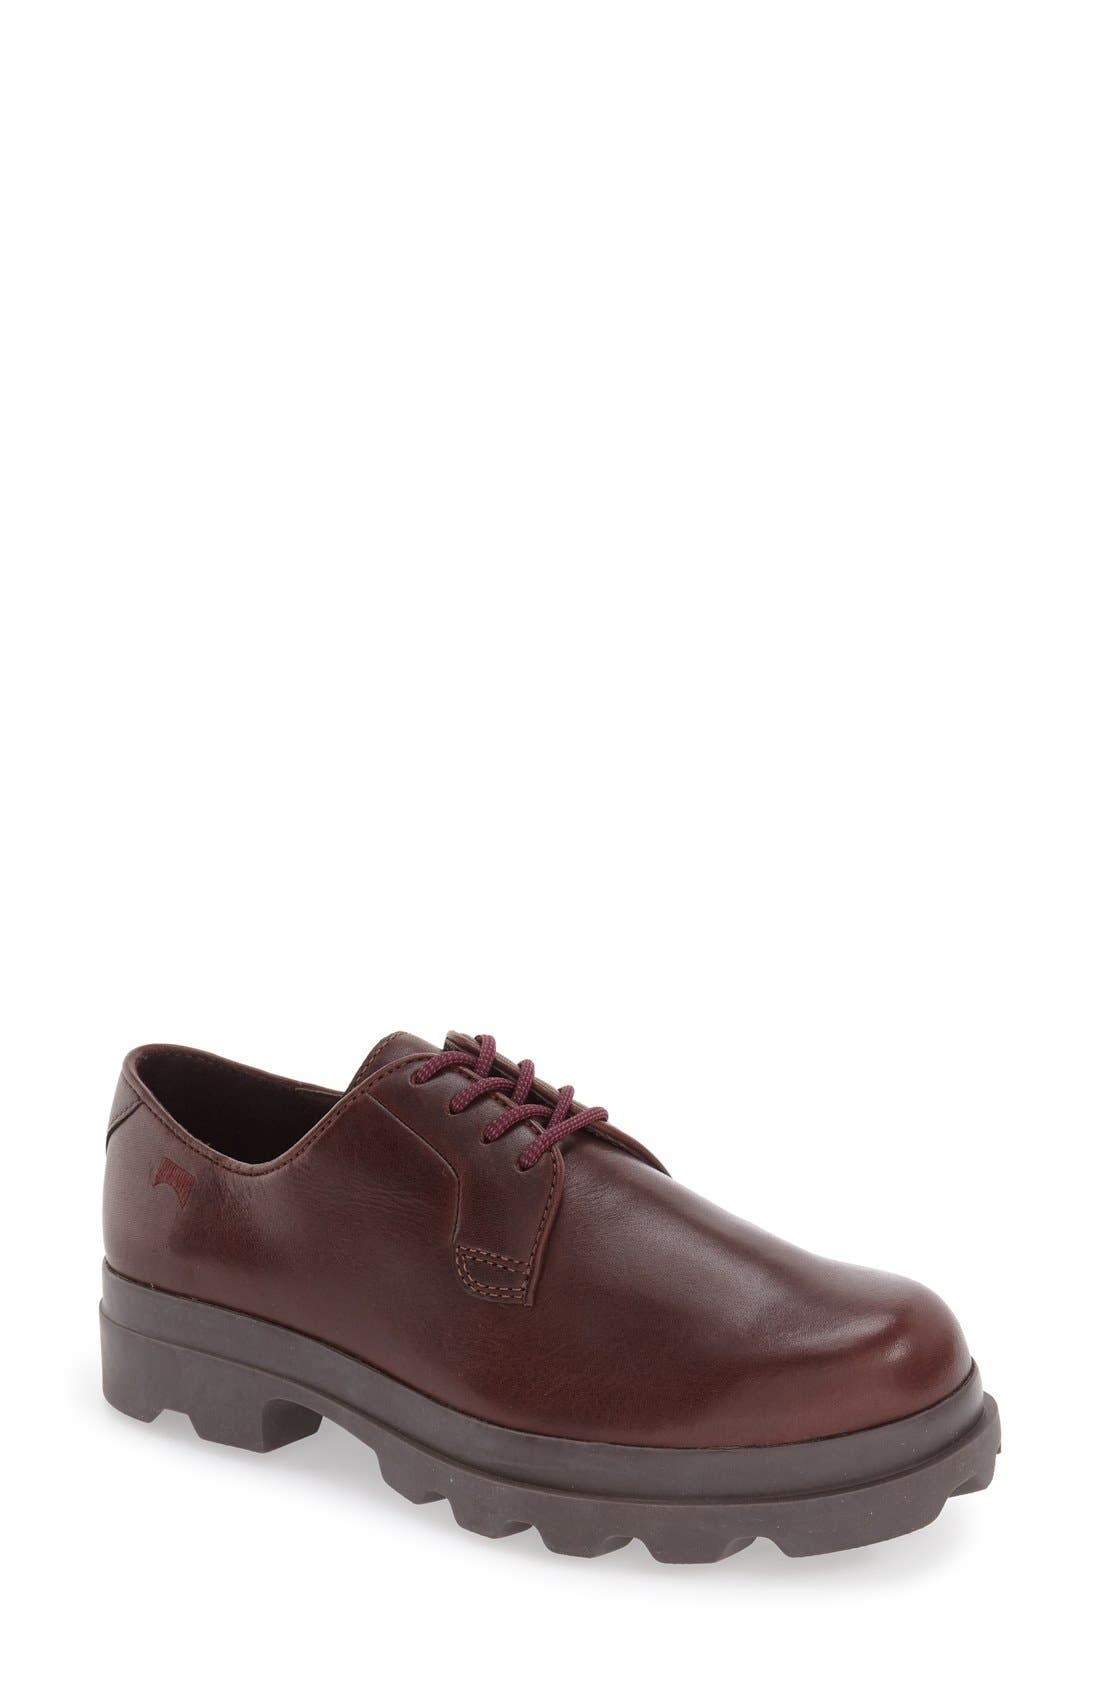 Main Image - Camper '1980' Lace-Up Oxford (Women)